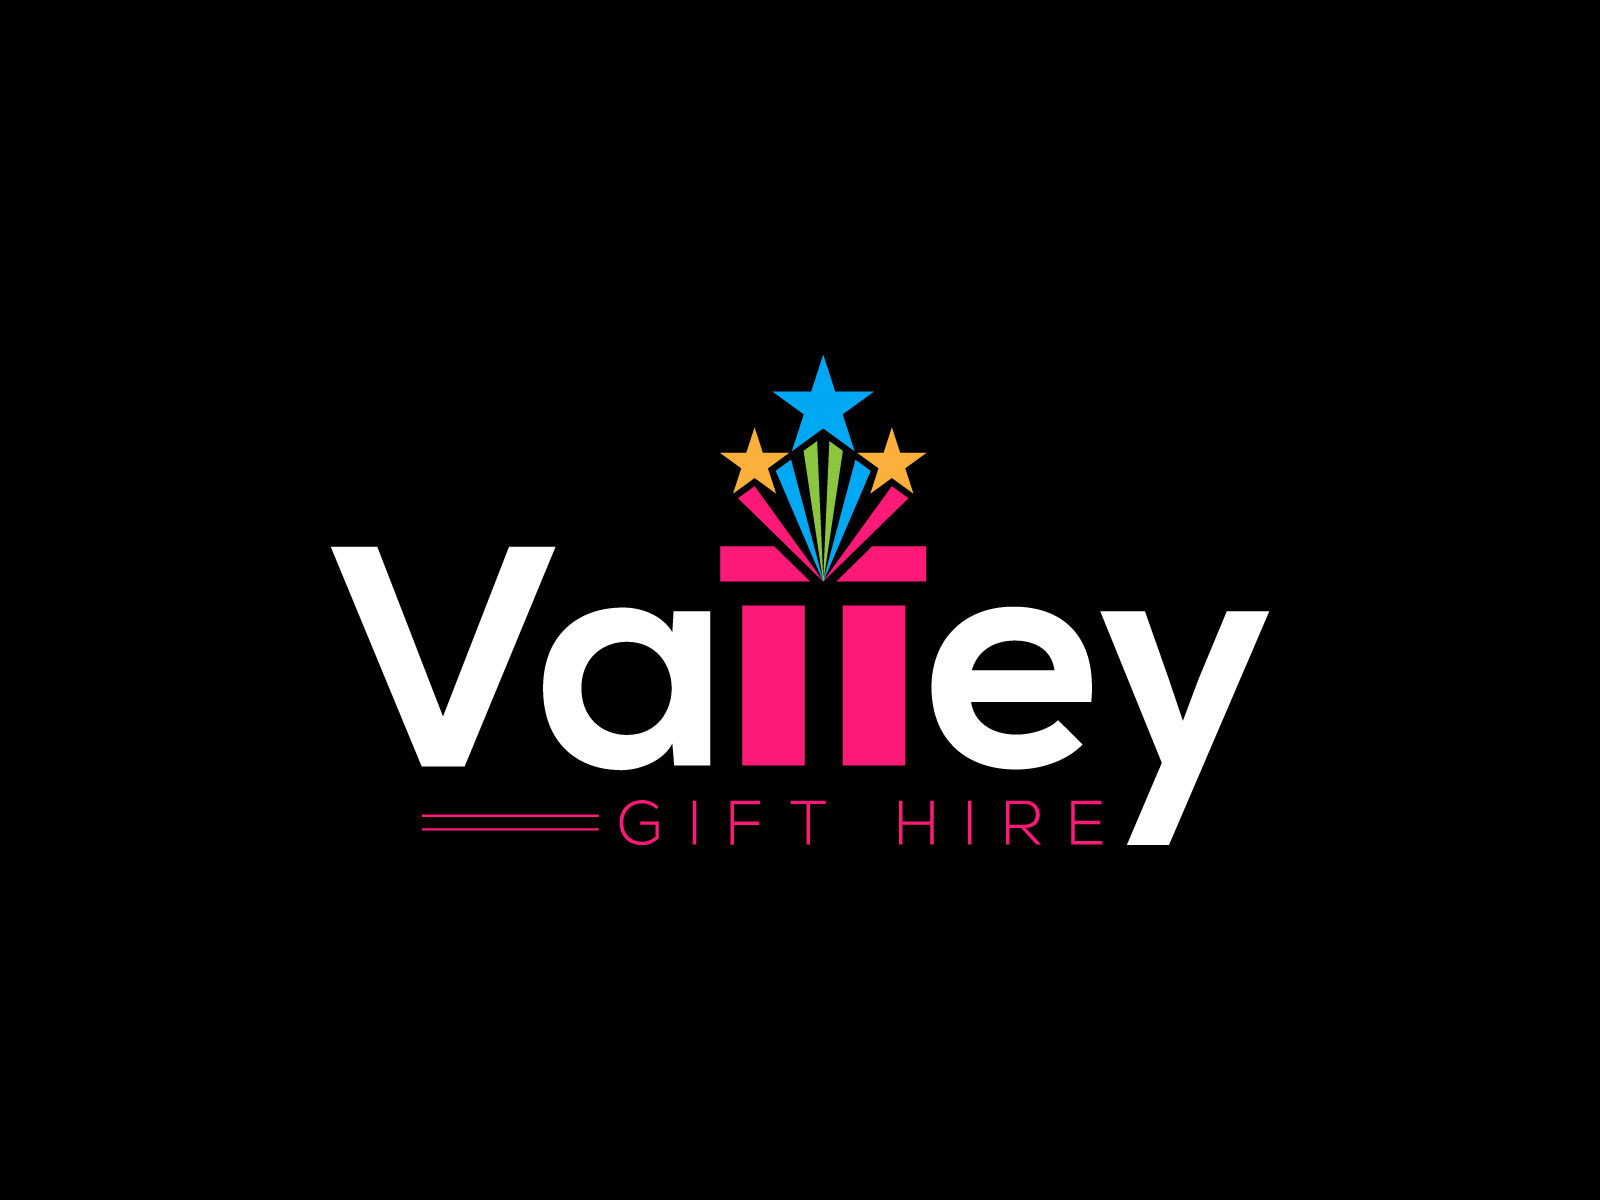 Logo design for Valley Gift Hire by MD Ebrahim Bhuiyan on.